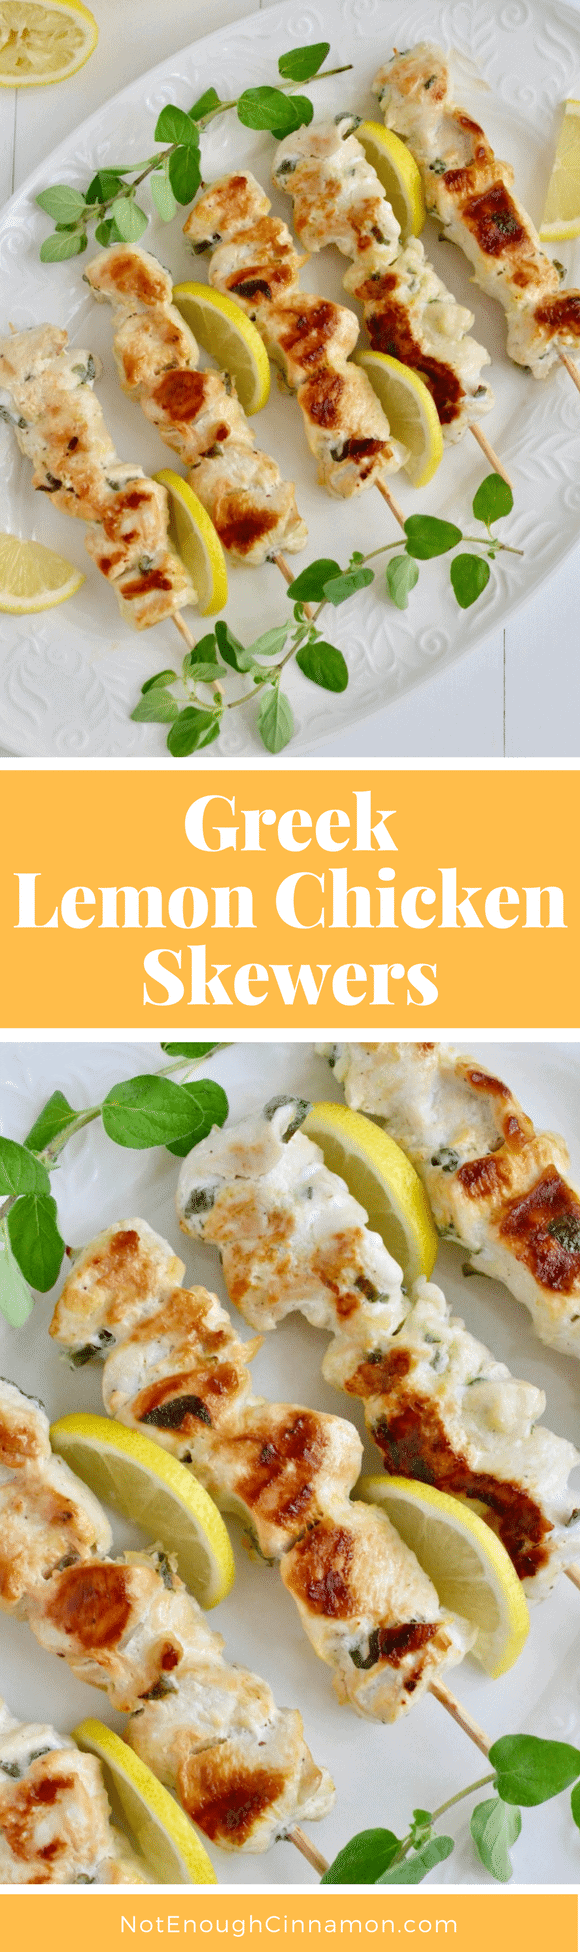 Nothing says summer like these delicious Greek Lemon Chicken Skewers marinated in oregano, garlic, and lemon. So simple yet so delicious! Pair these with Greek salad and a side of tzatziki for a low carb meal! #realfood, #chickenrecipes, #bbq, #lemonchicken, #cleaneating